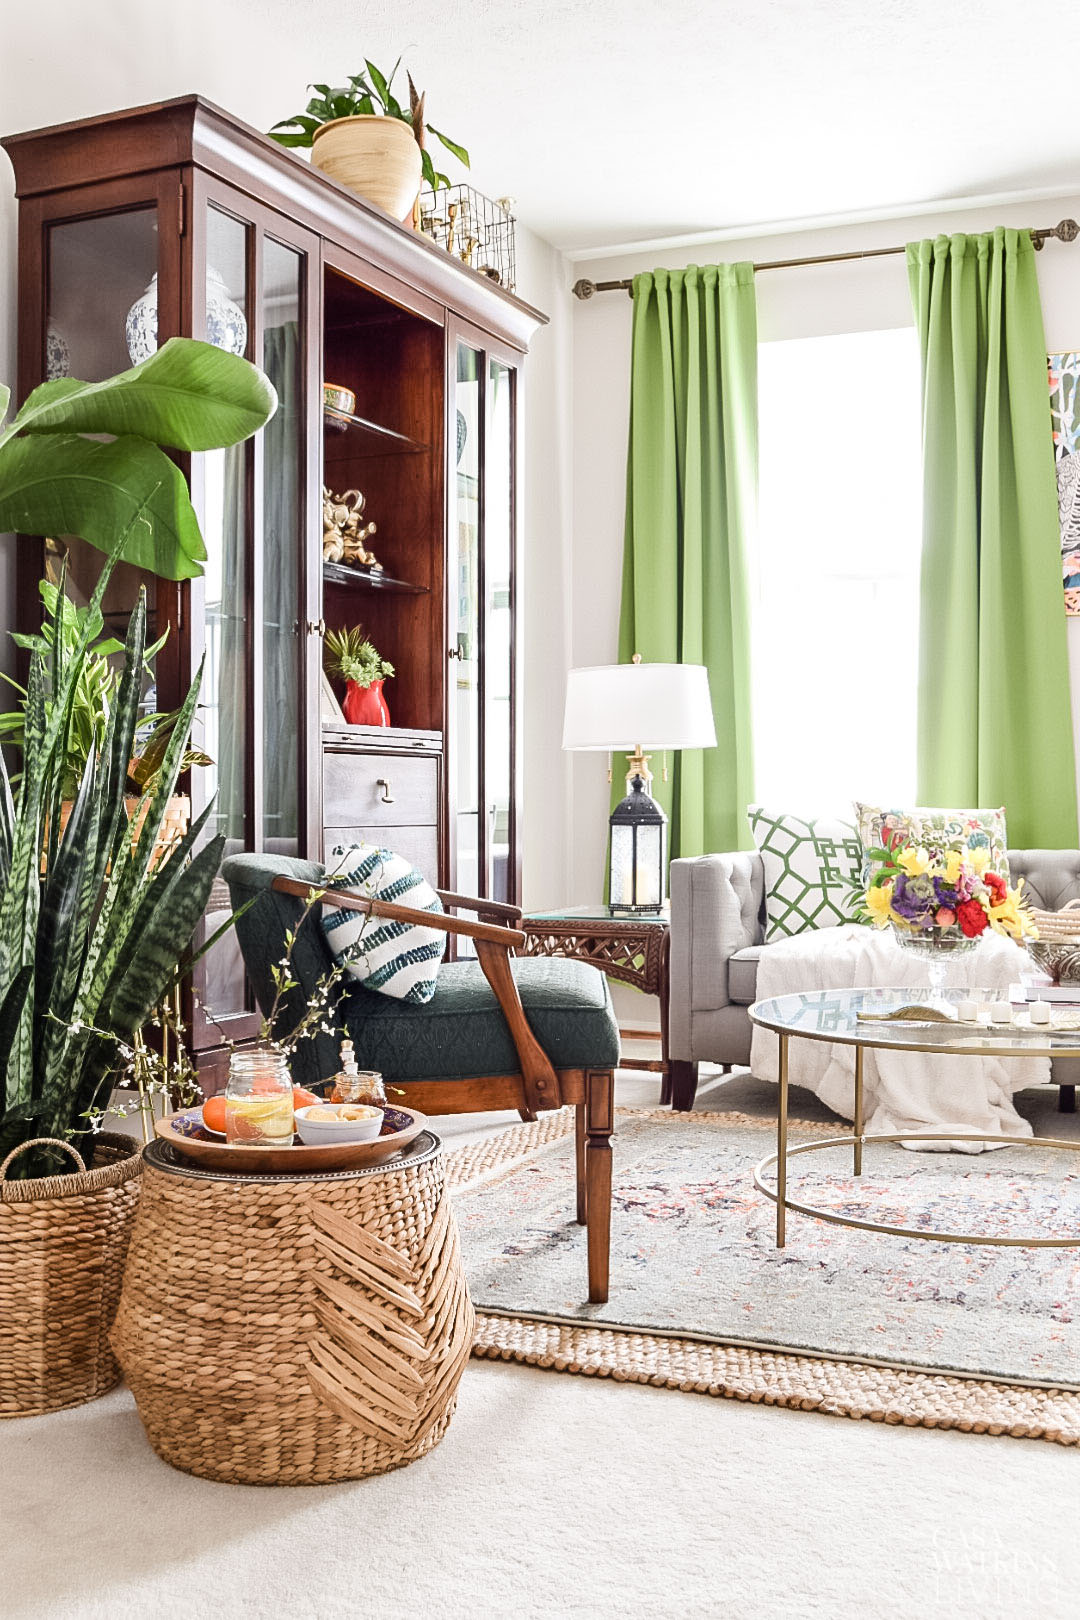 living room with global style and botanicals